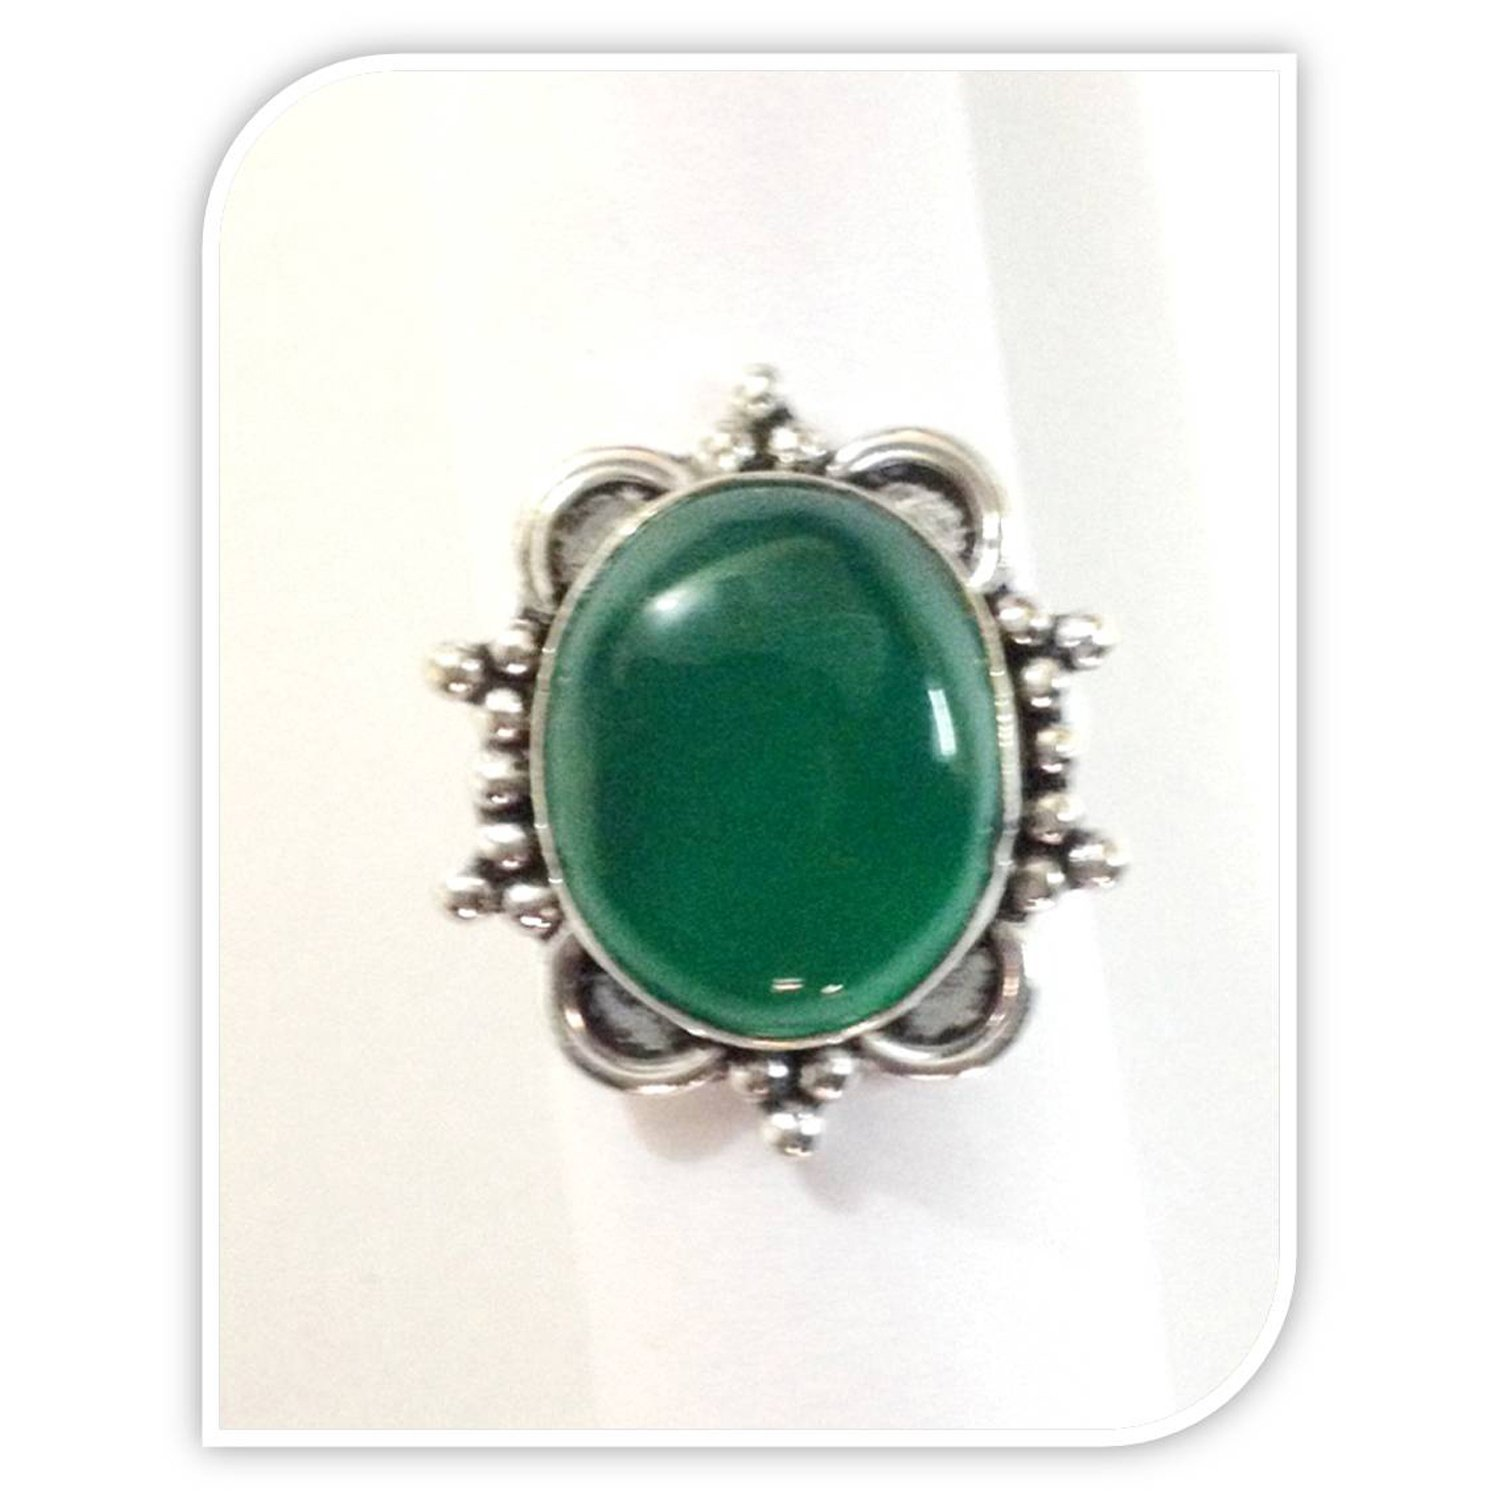 brides worn gemstone inside bridal jewelry hurley ring by wedding rings nancy news colorful wentz real green light weddings vibrant